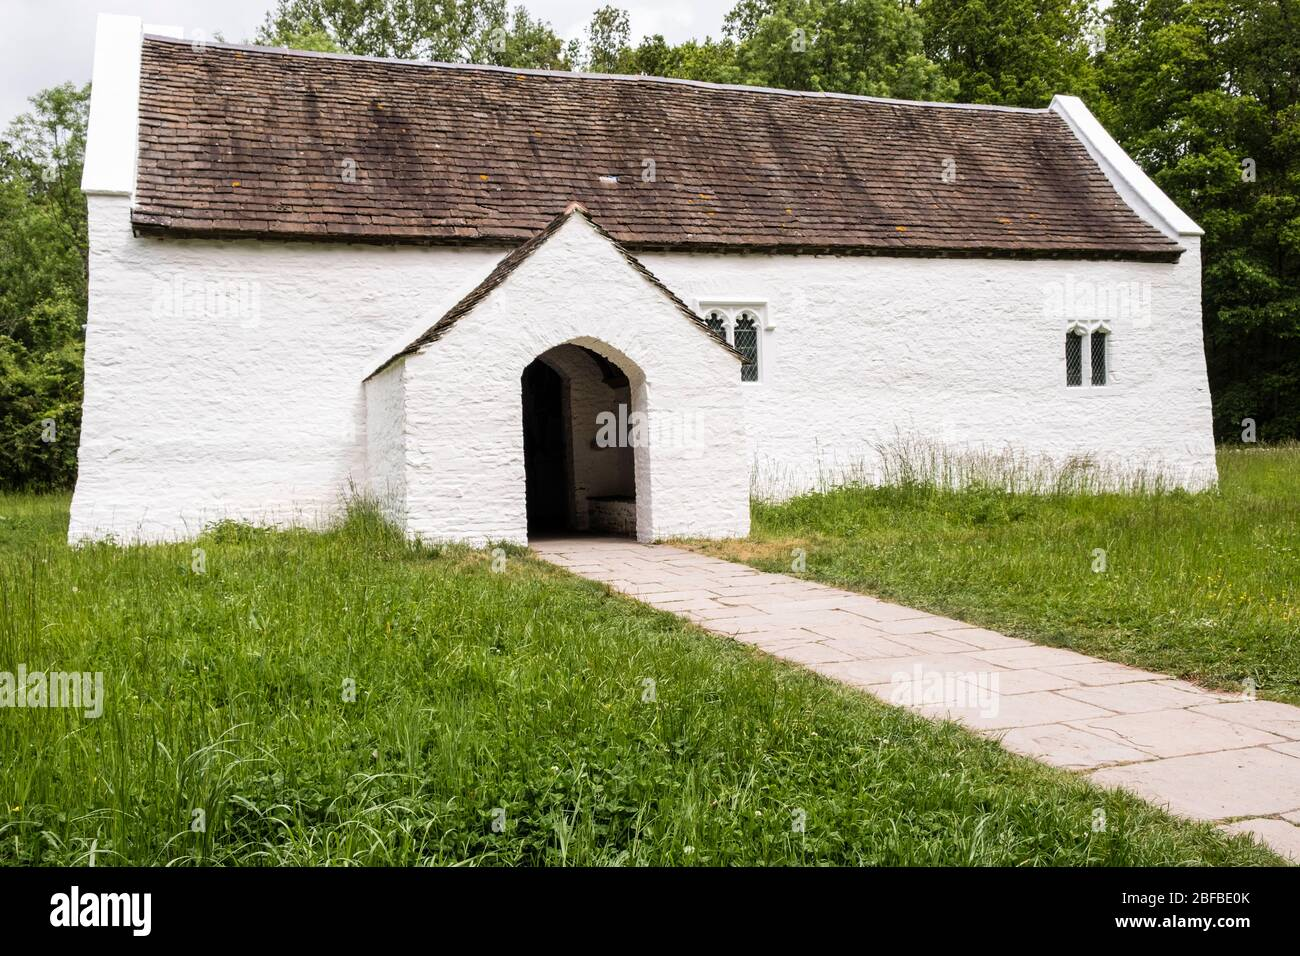 St Teilo's Church at St Fagans National Museum of History, Cardiff, Wales, GB, UK Stock Photo